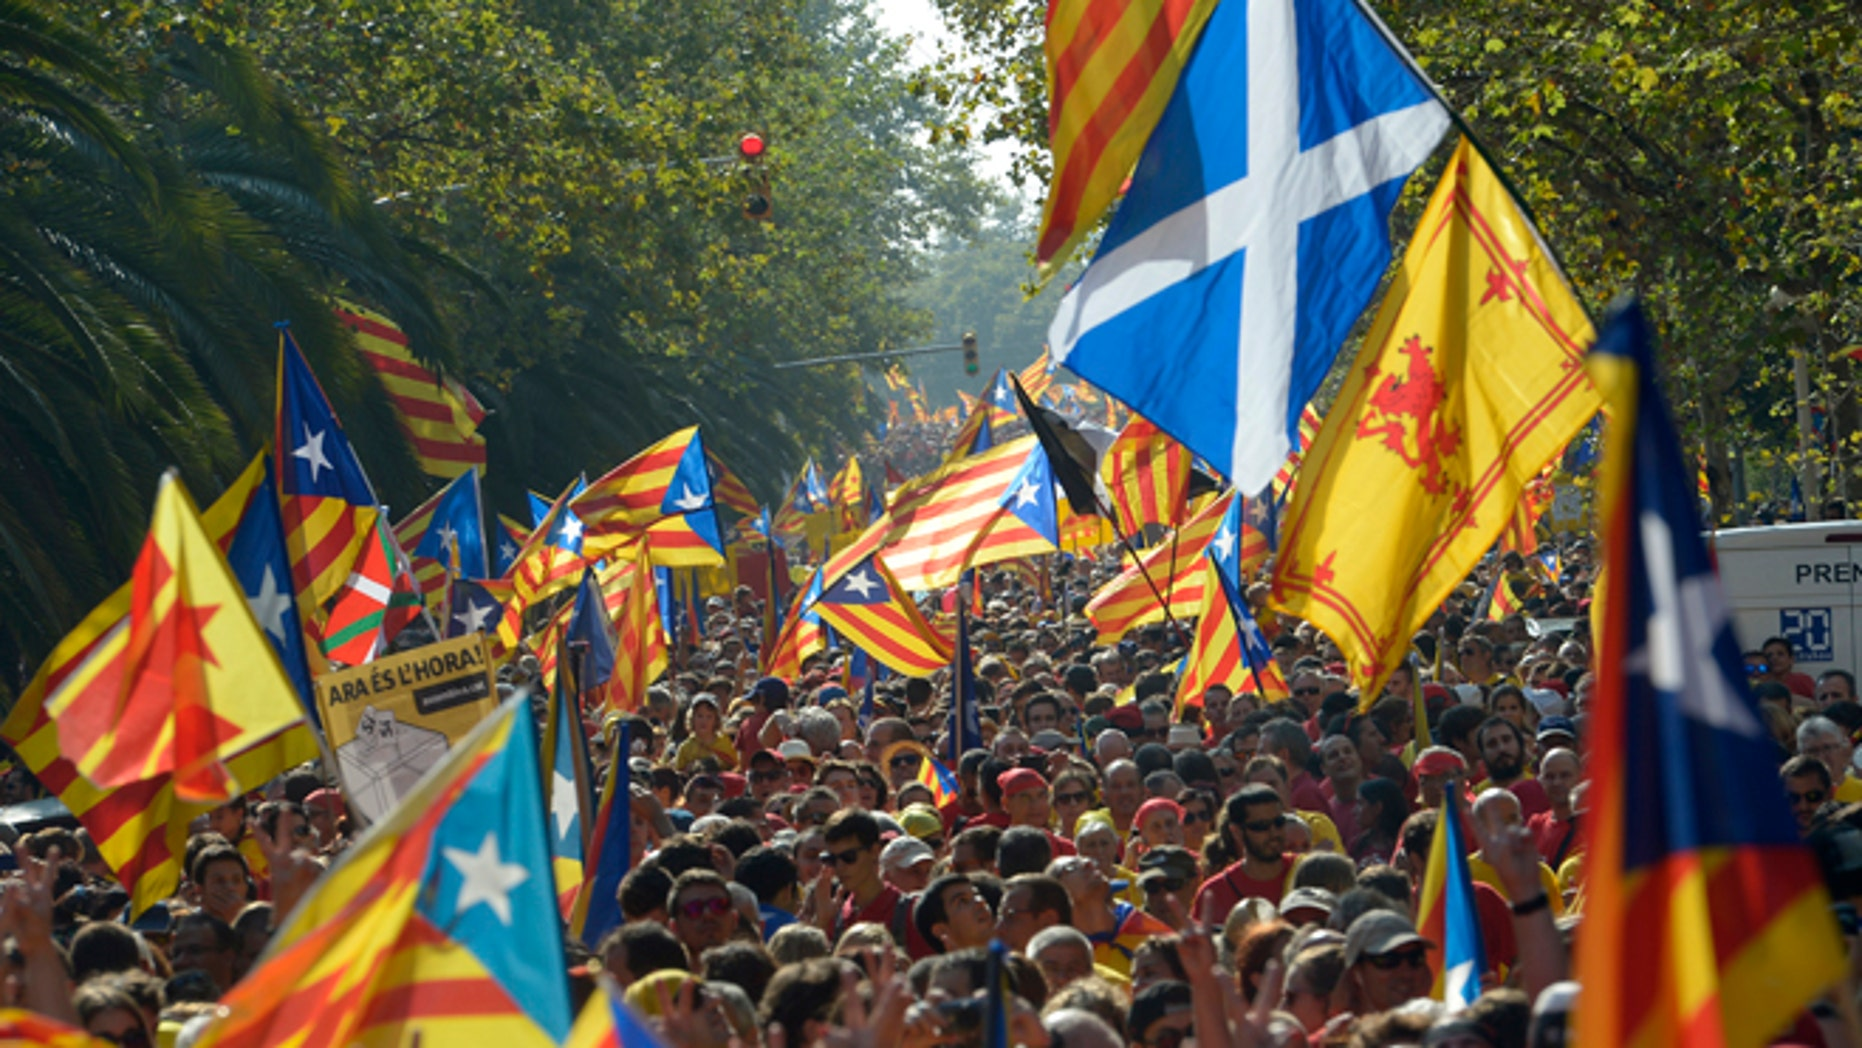 A Saltire flag, top right, is seen amongst estelada flags, symbolizing Catalonia's independence, during a demonstration calling for the independence of Catalonia in Barcelona, Spain, Thursday, Sept 11, 2014. A week before Scotland votes on whether to break away from the United Kingdom, separatists in northeastern Spain were trying to convince hundreds of thousands to protest across Catalonia to demand a secession sentiment vote that the central government in Madrid insists would be illegal. AP Photo/Manu Fernandez)